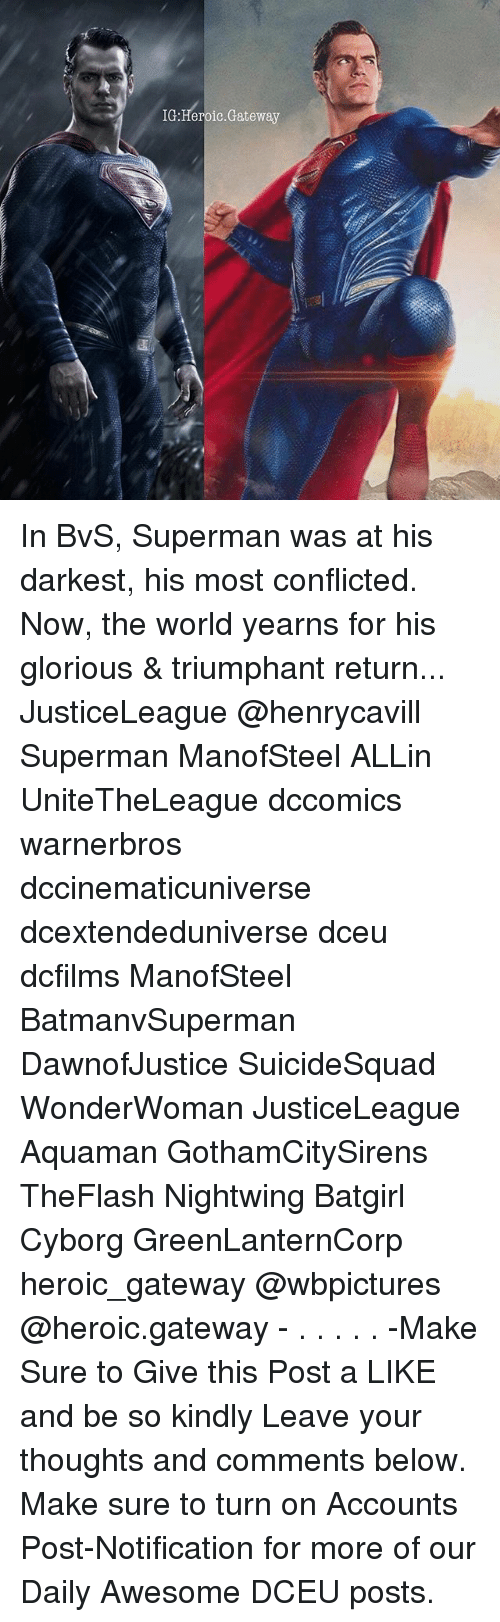 triumphant: IG:Heroic.Gateway In BvS, Superman was at his darkest, his most conflicted. Now, the world yearns for his glorious & triumphant return... JusticeLeague @henrycavill Superman ManofSteel ALLin UniteTheLeague dccomics warnerbros dccinematicuniverse dcextendeduniverse dceu dcfilms ManofSteel BatmanvSuperman DawnofJustice SuicideSquad WonderWoman JusticeLeague Aquaman GothamCitySirens TheFlash Nightwing Batgirl Cyborg GreenLanternCorp heroic_gateway @wbpictures @heroic.gateway - . . . . . -Make Sure to Give this Post a LIKE and be so kindly Leave your thoughts and comments below. Make sure to turn on Accounts Post-Notification for more of our Daily Awesome DCEU posts.